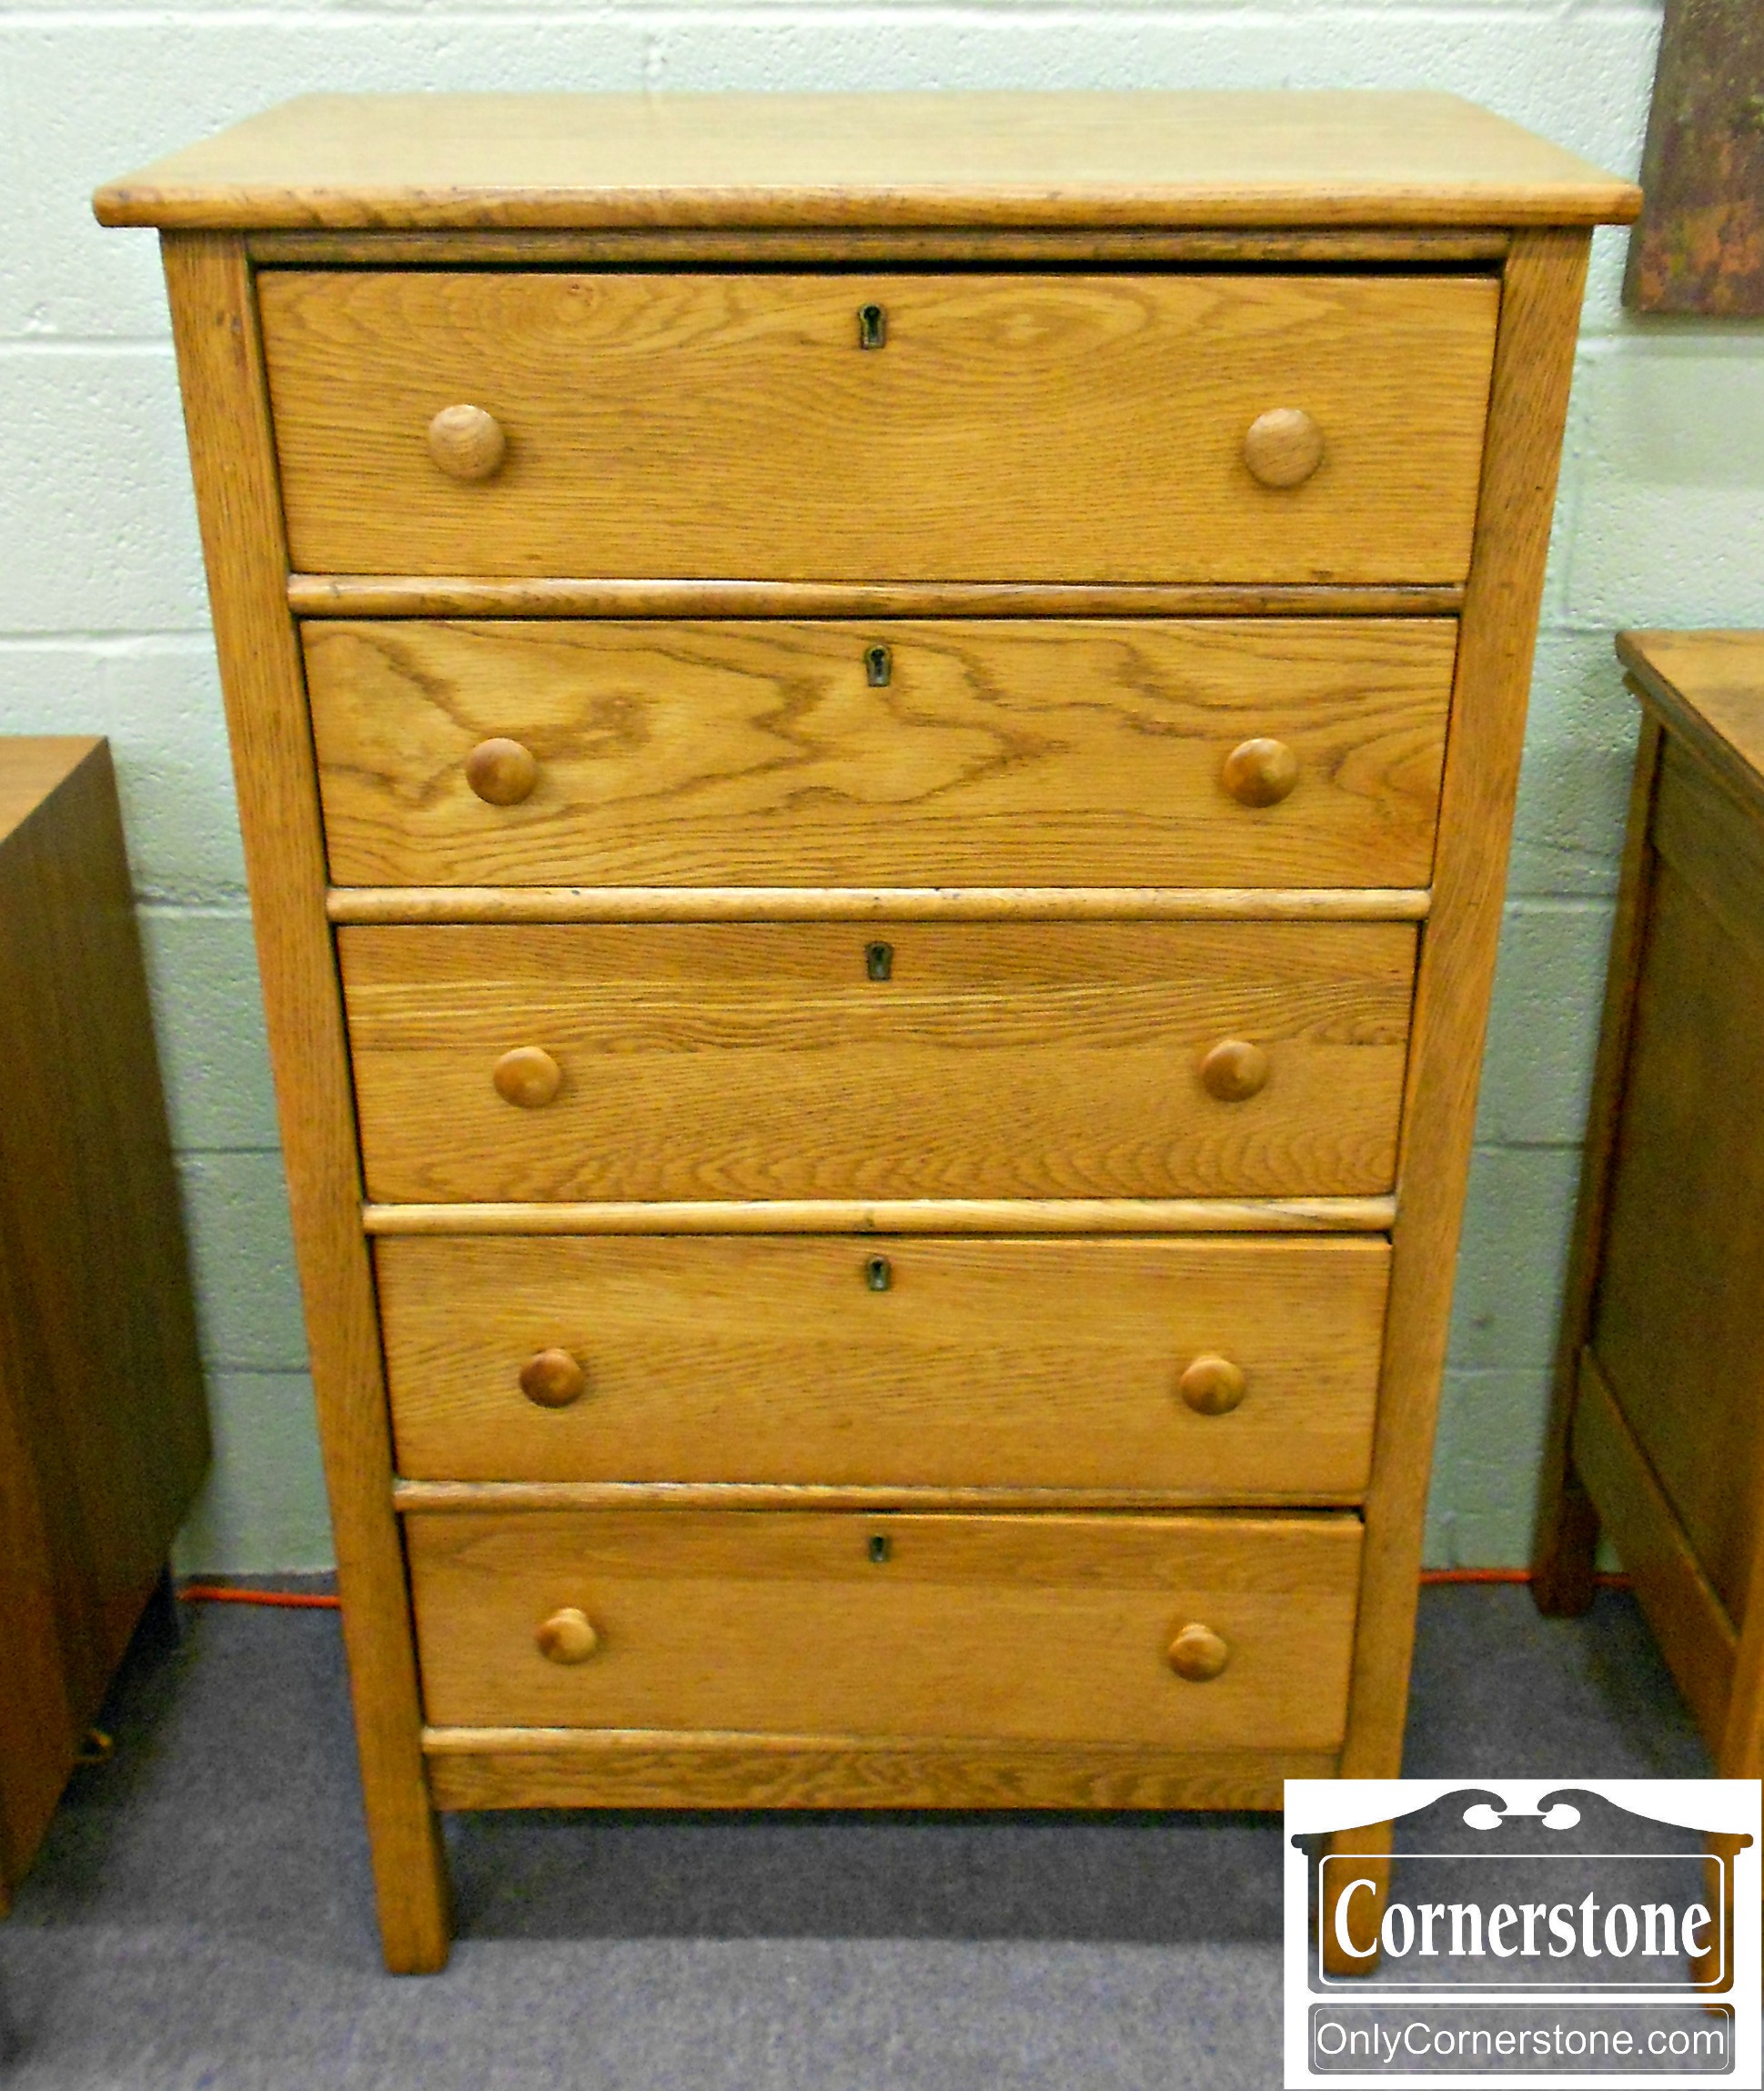 5960-80 Oak Lingerie Chest